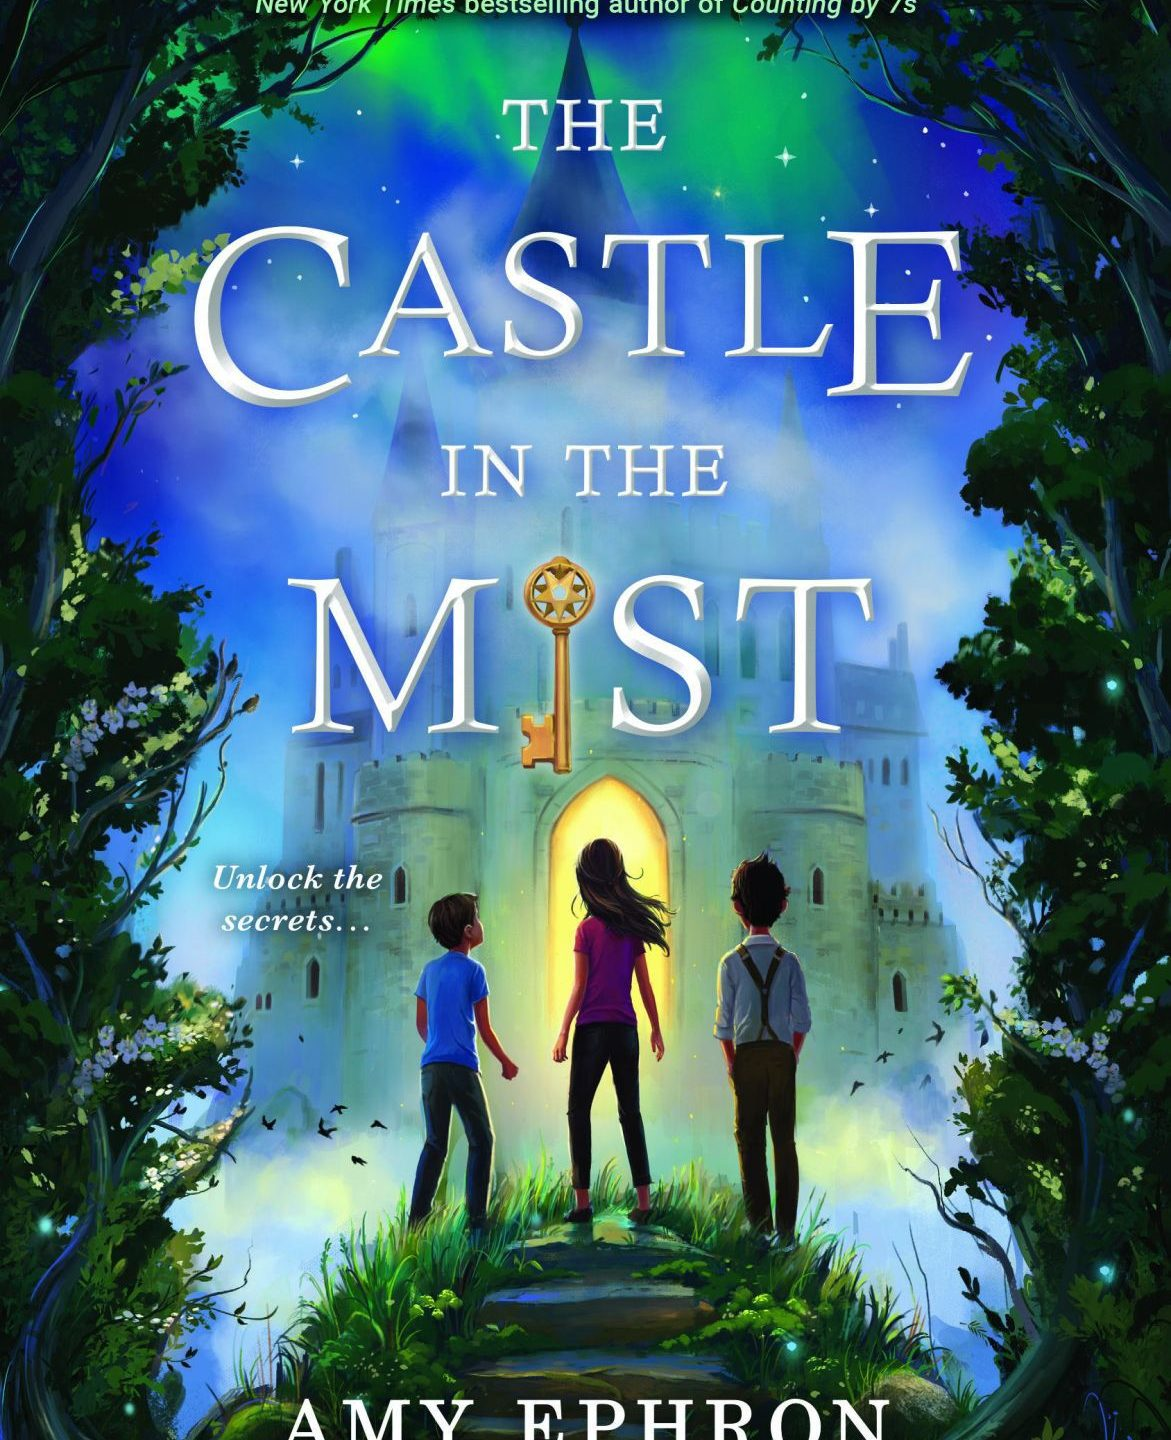 MG Book Review: The Castle in the Mist by Amy Ephron